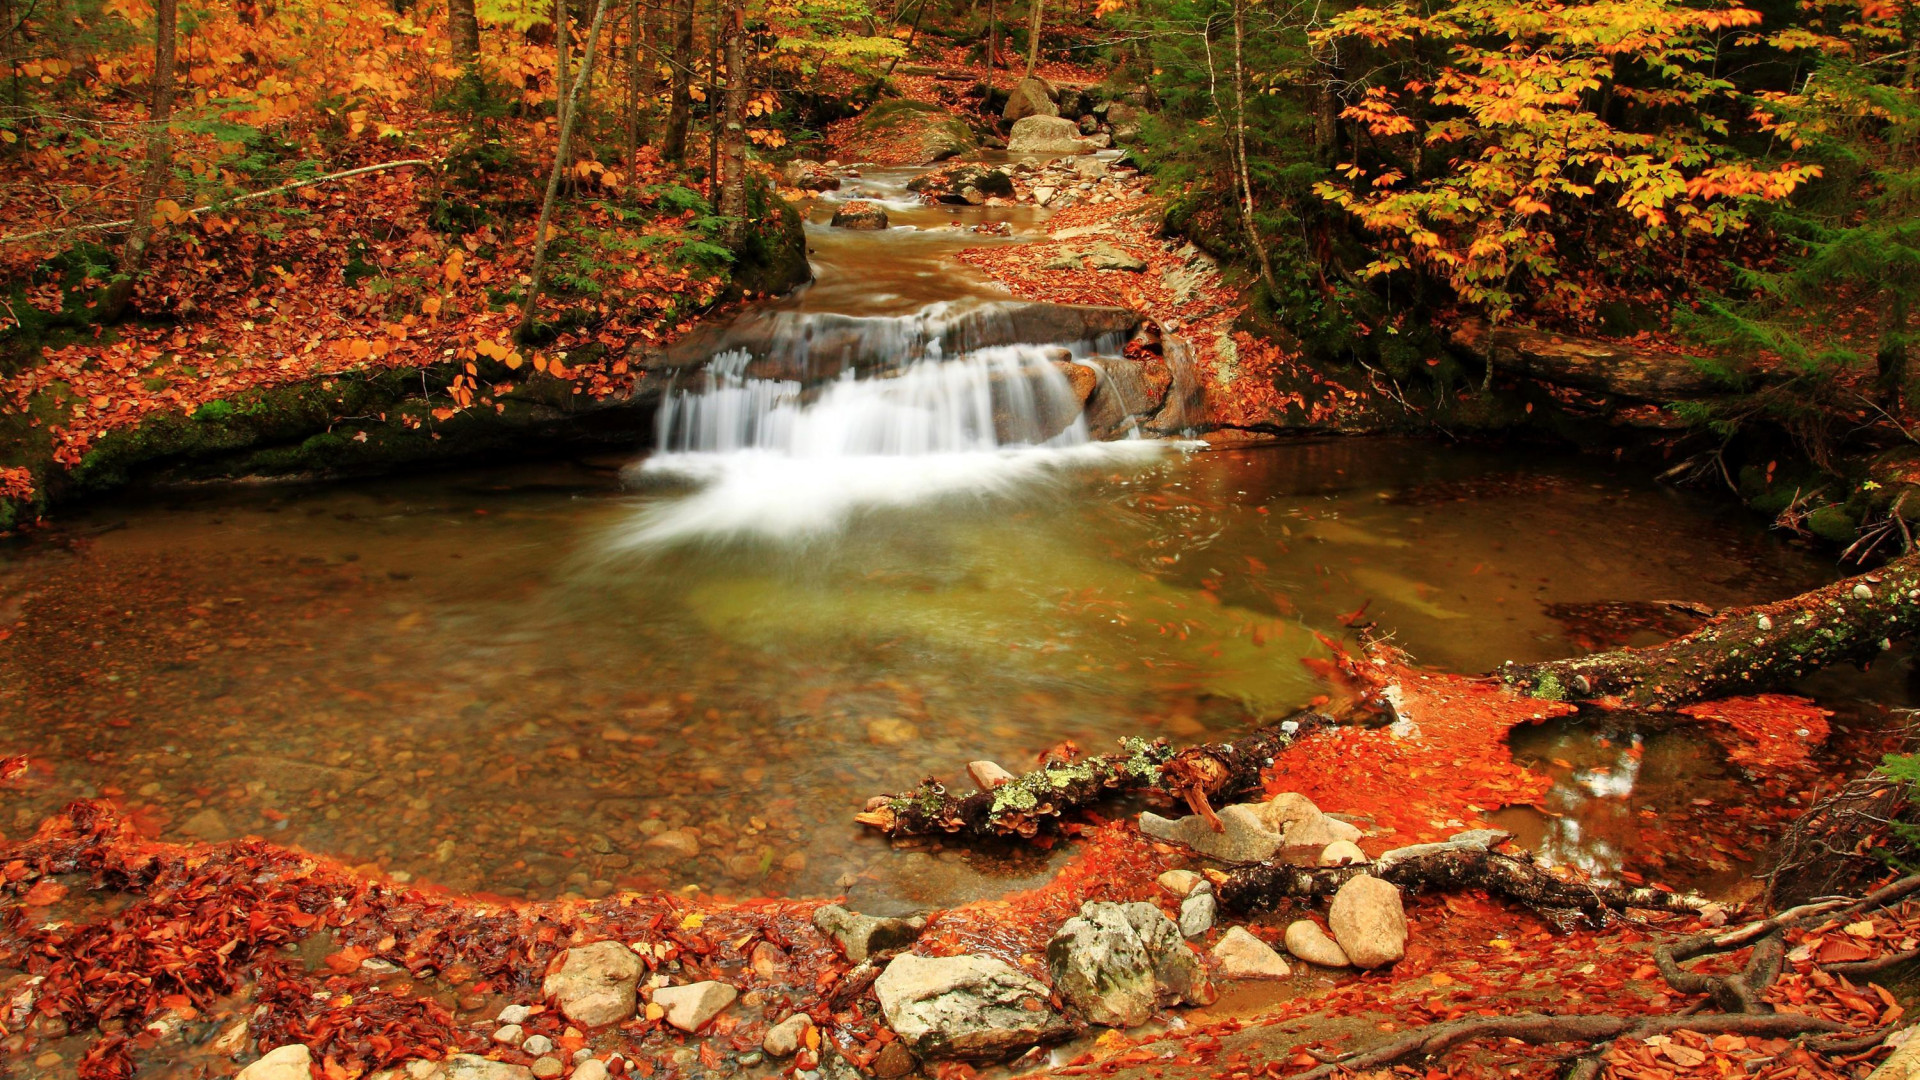 3d Moving Wallpapers For Pc Free Download Seasons Autumn Forests Waterfalls Foliage Nature Hd